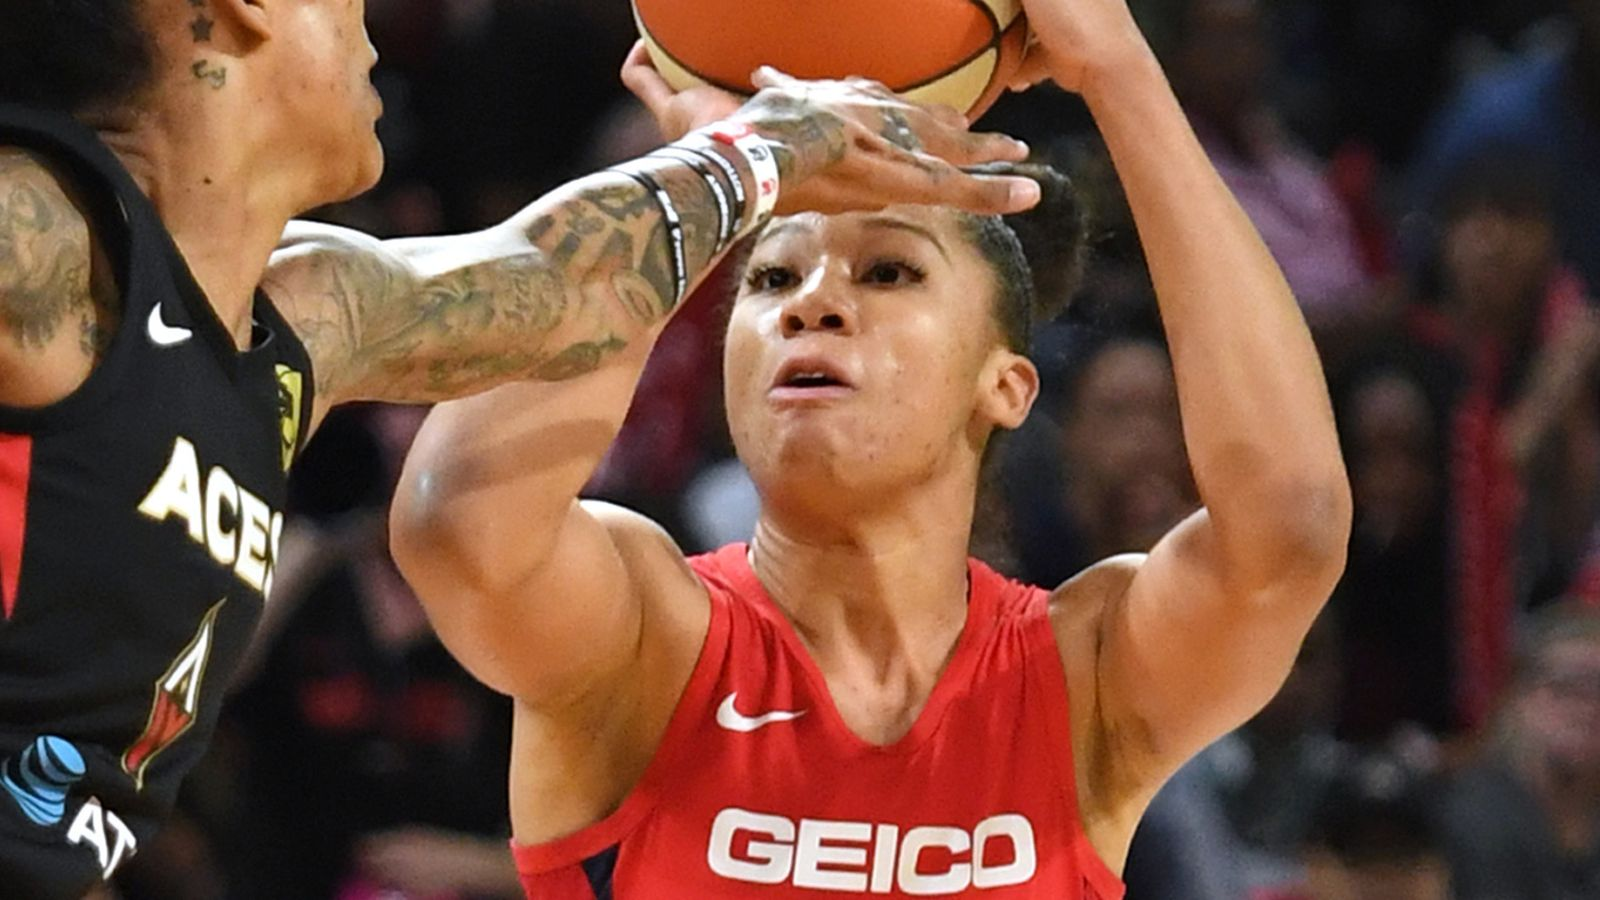 WNBA star Aerial Powers reveals how she is preparing for the 2020 season in lockdown